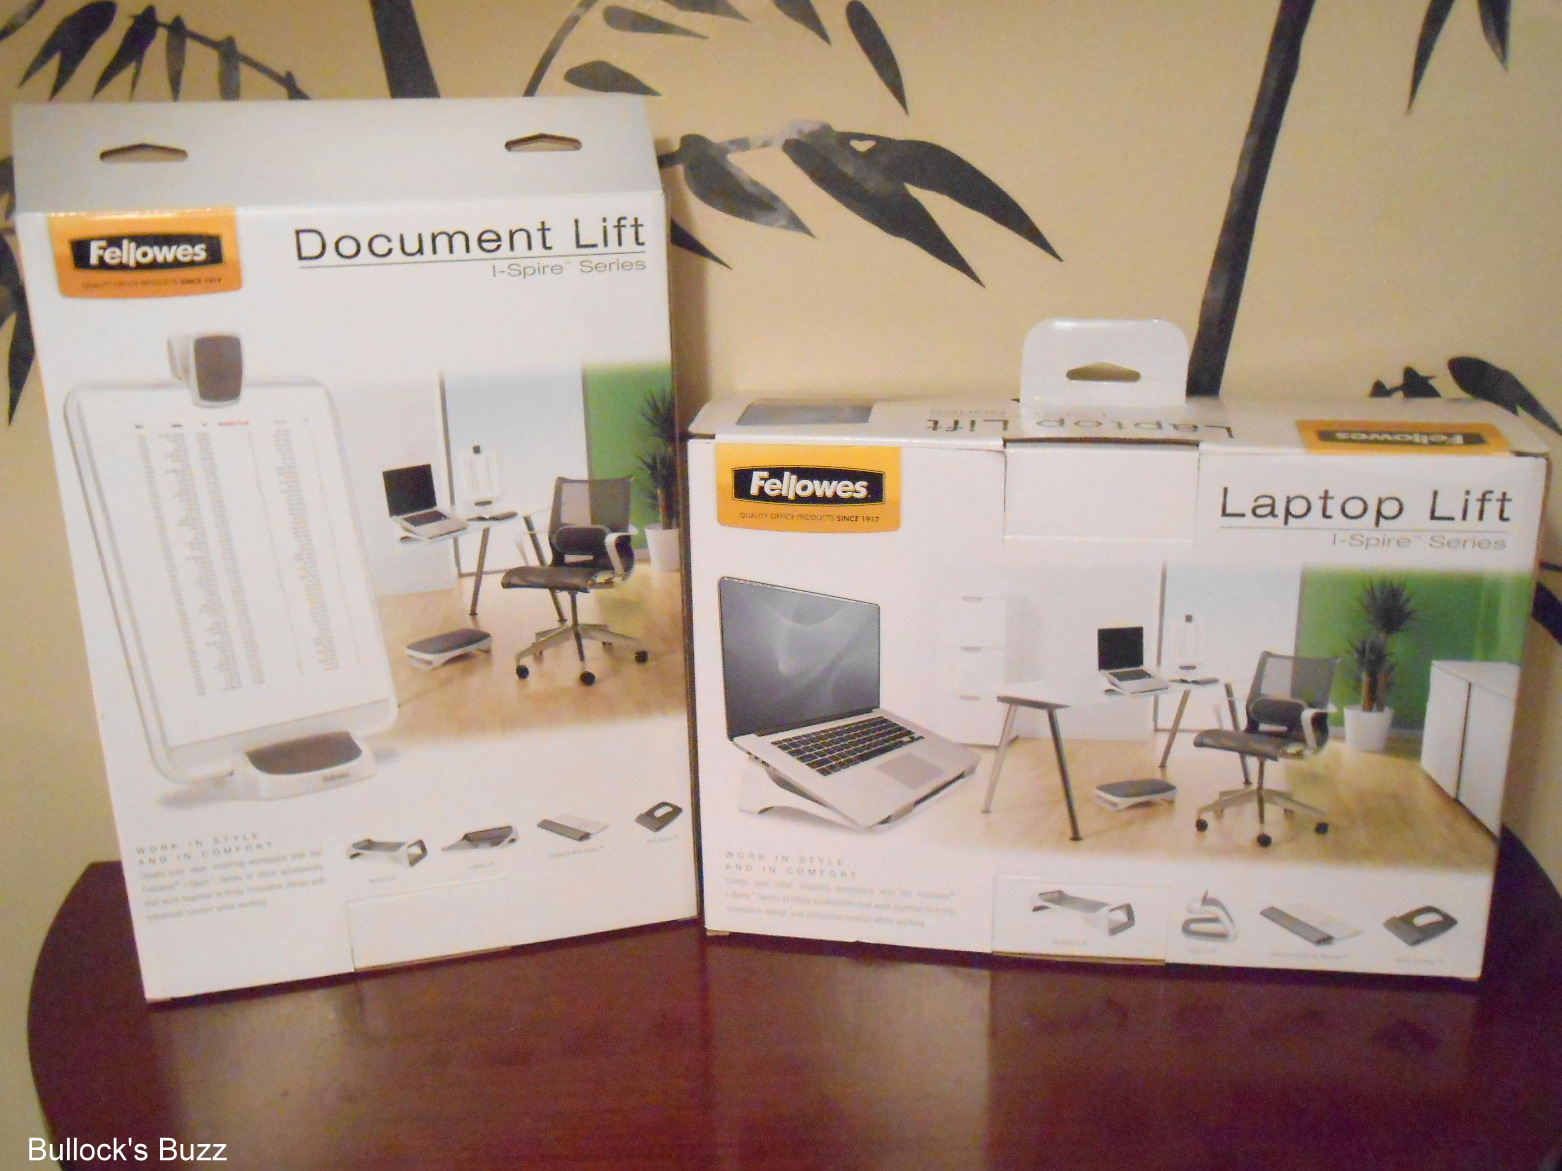 Fellowes I-Spire Product Review & Shoplet.com #shopletreviews